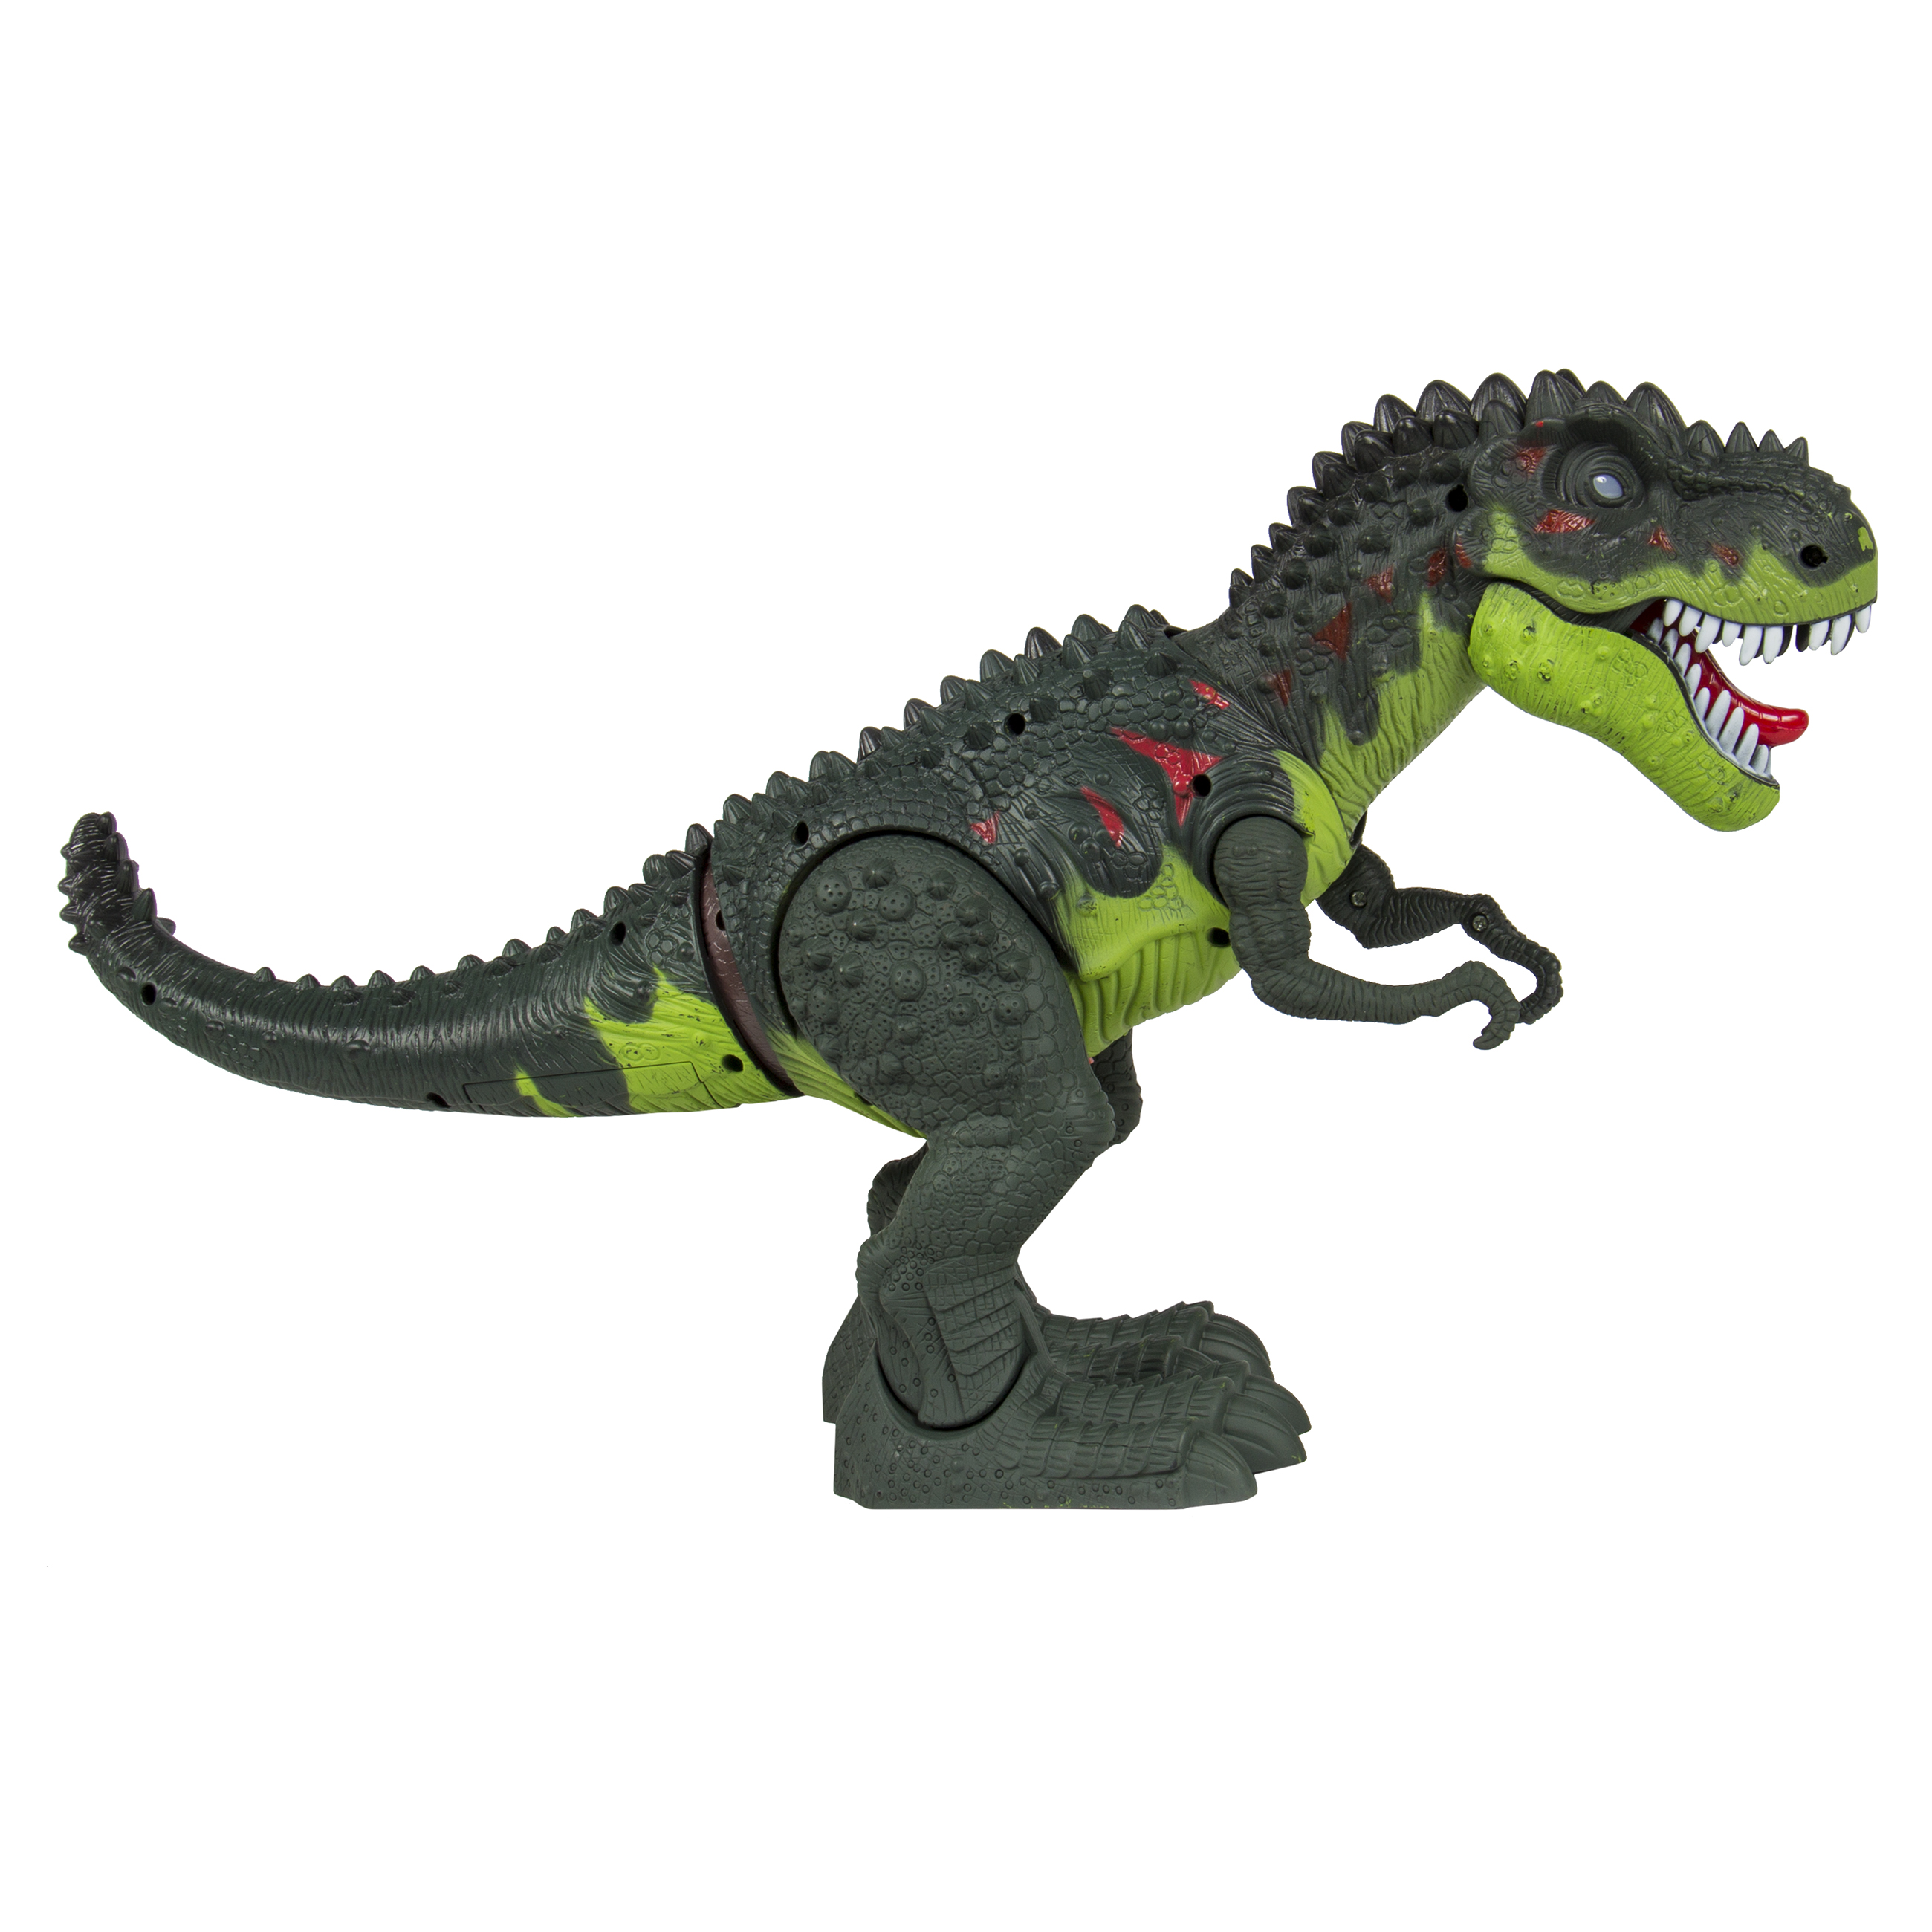 kids toy walking t rex dinosaur toy figure with lights u0026 sounds